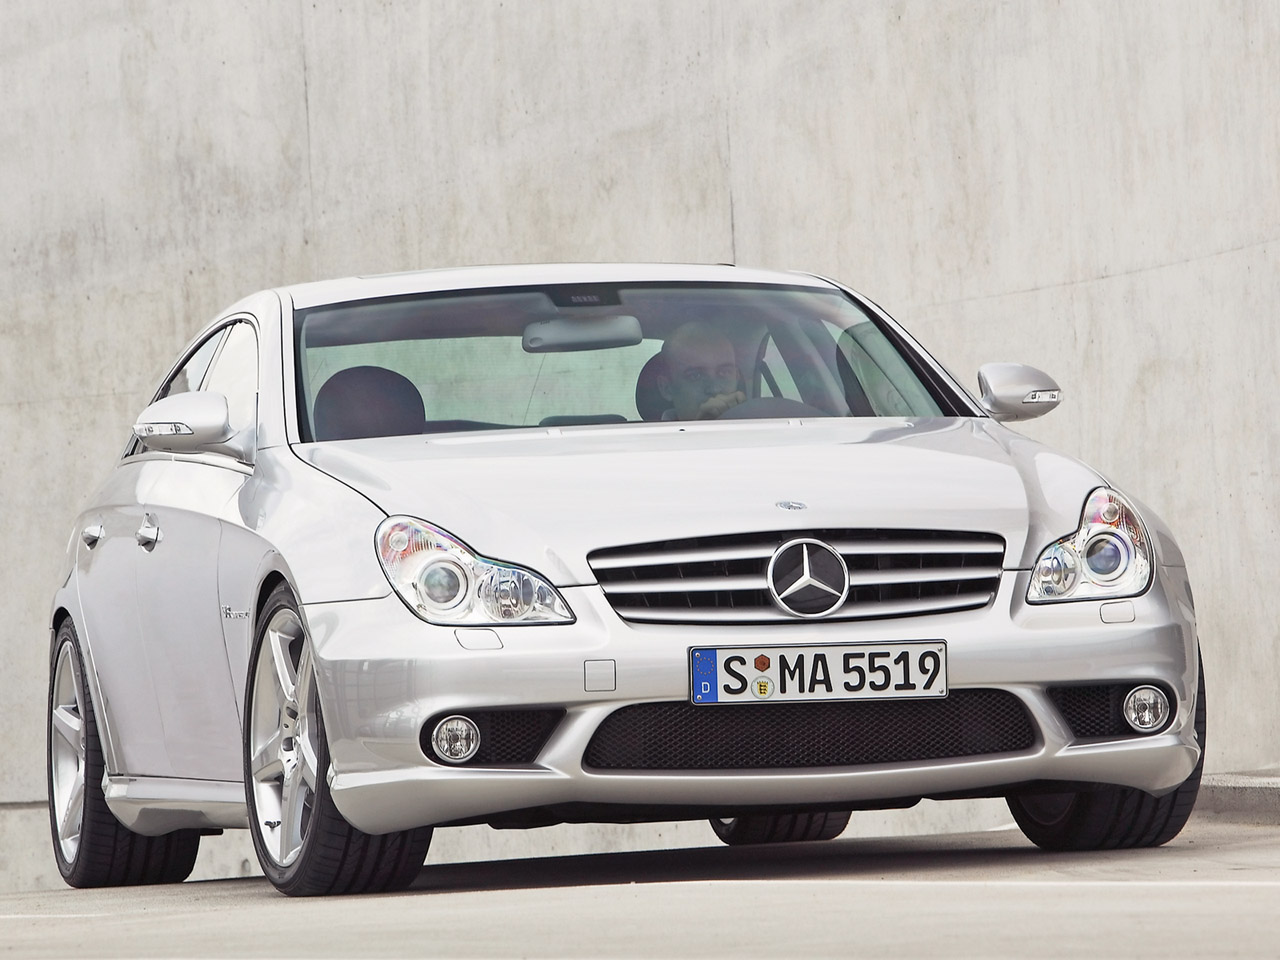 Mercedes benz cls 55 amg technical details history for Mercedes benz amg parts